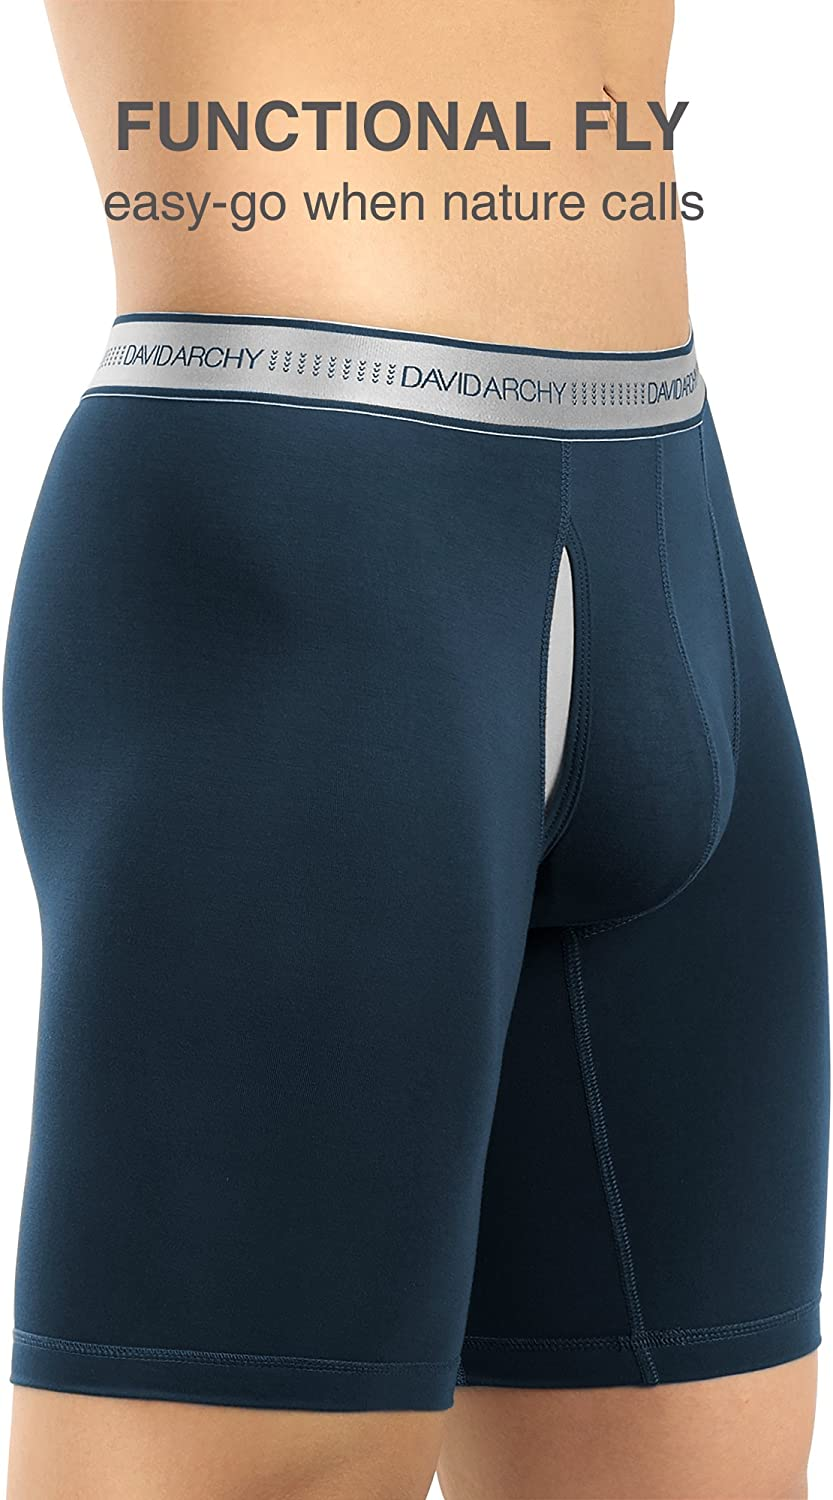 DAVID ARCHY Mens Breathable Boxer Briefs Bamboo Rayon Trunks with Fly in 3 or 4 Pack